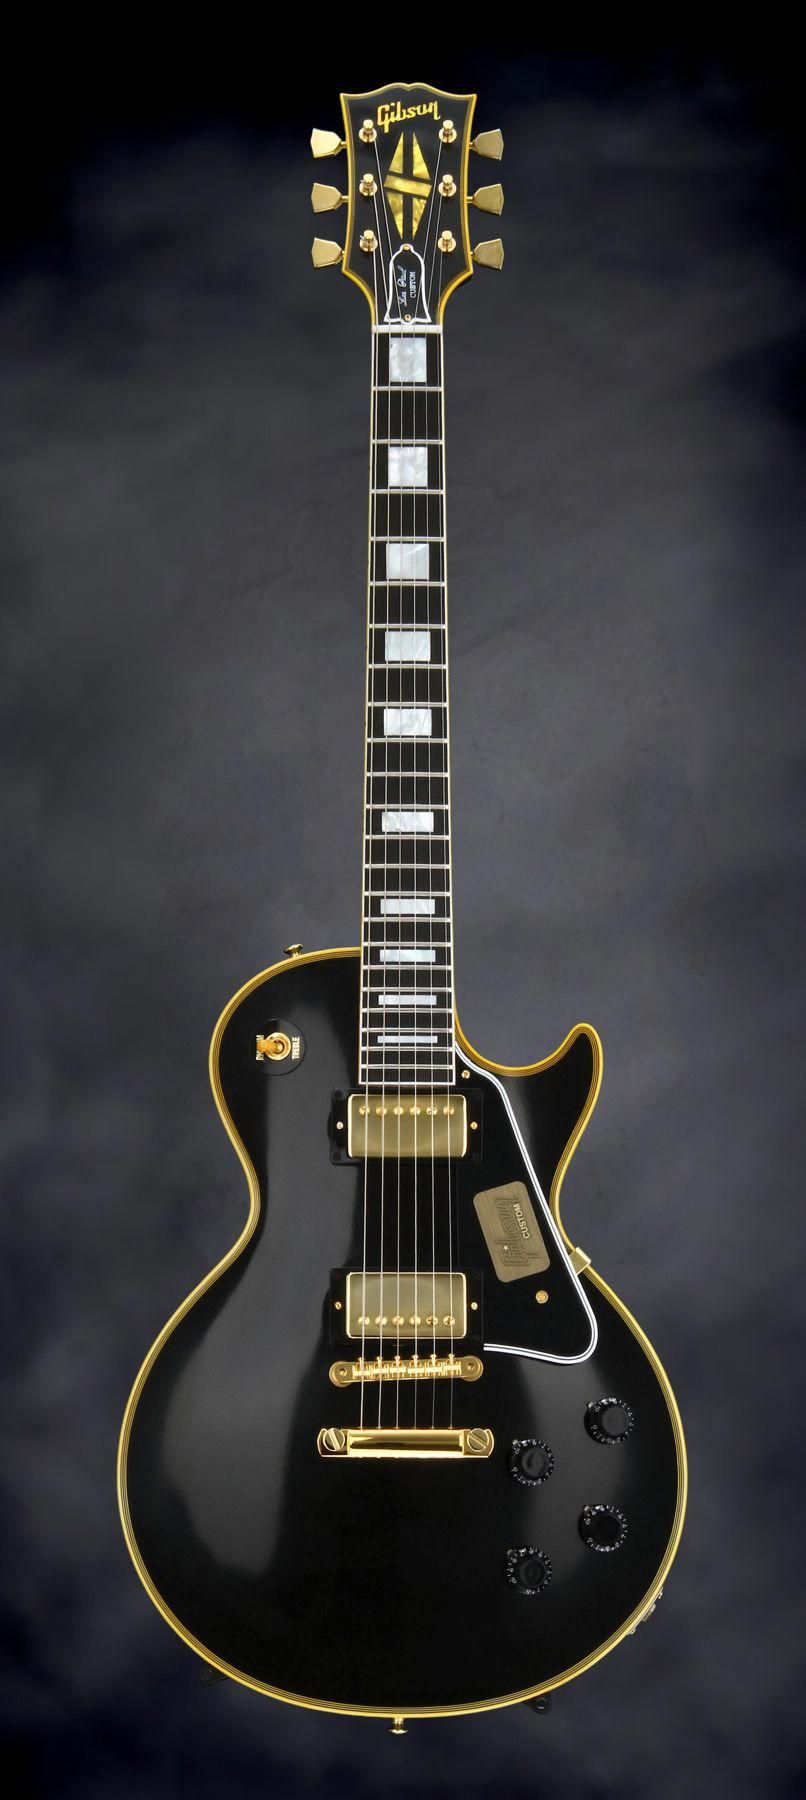 These Custom Gibson Guitars Are Great Customgibsonguitars Gibson Guitars Les Paul Custom Guitar